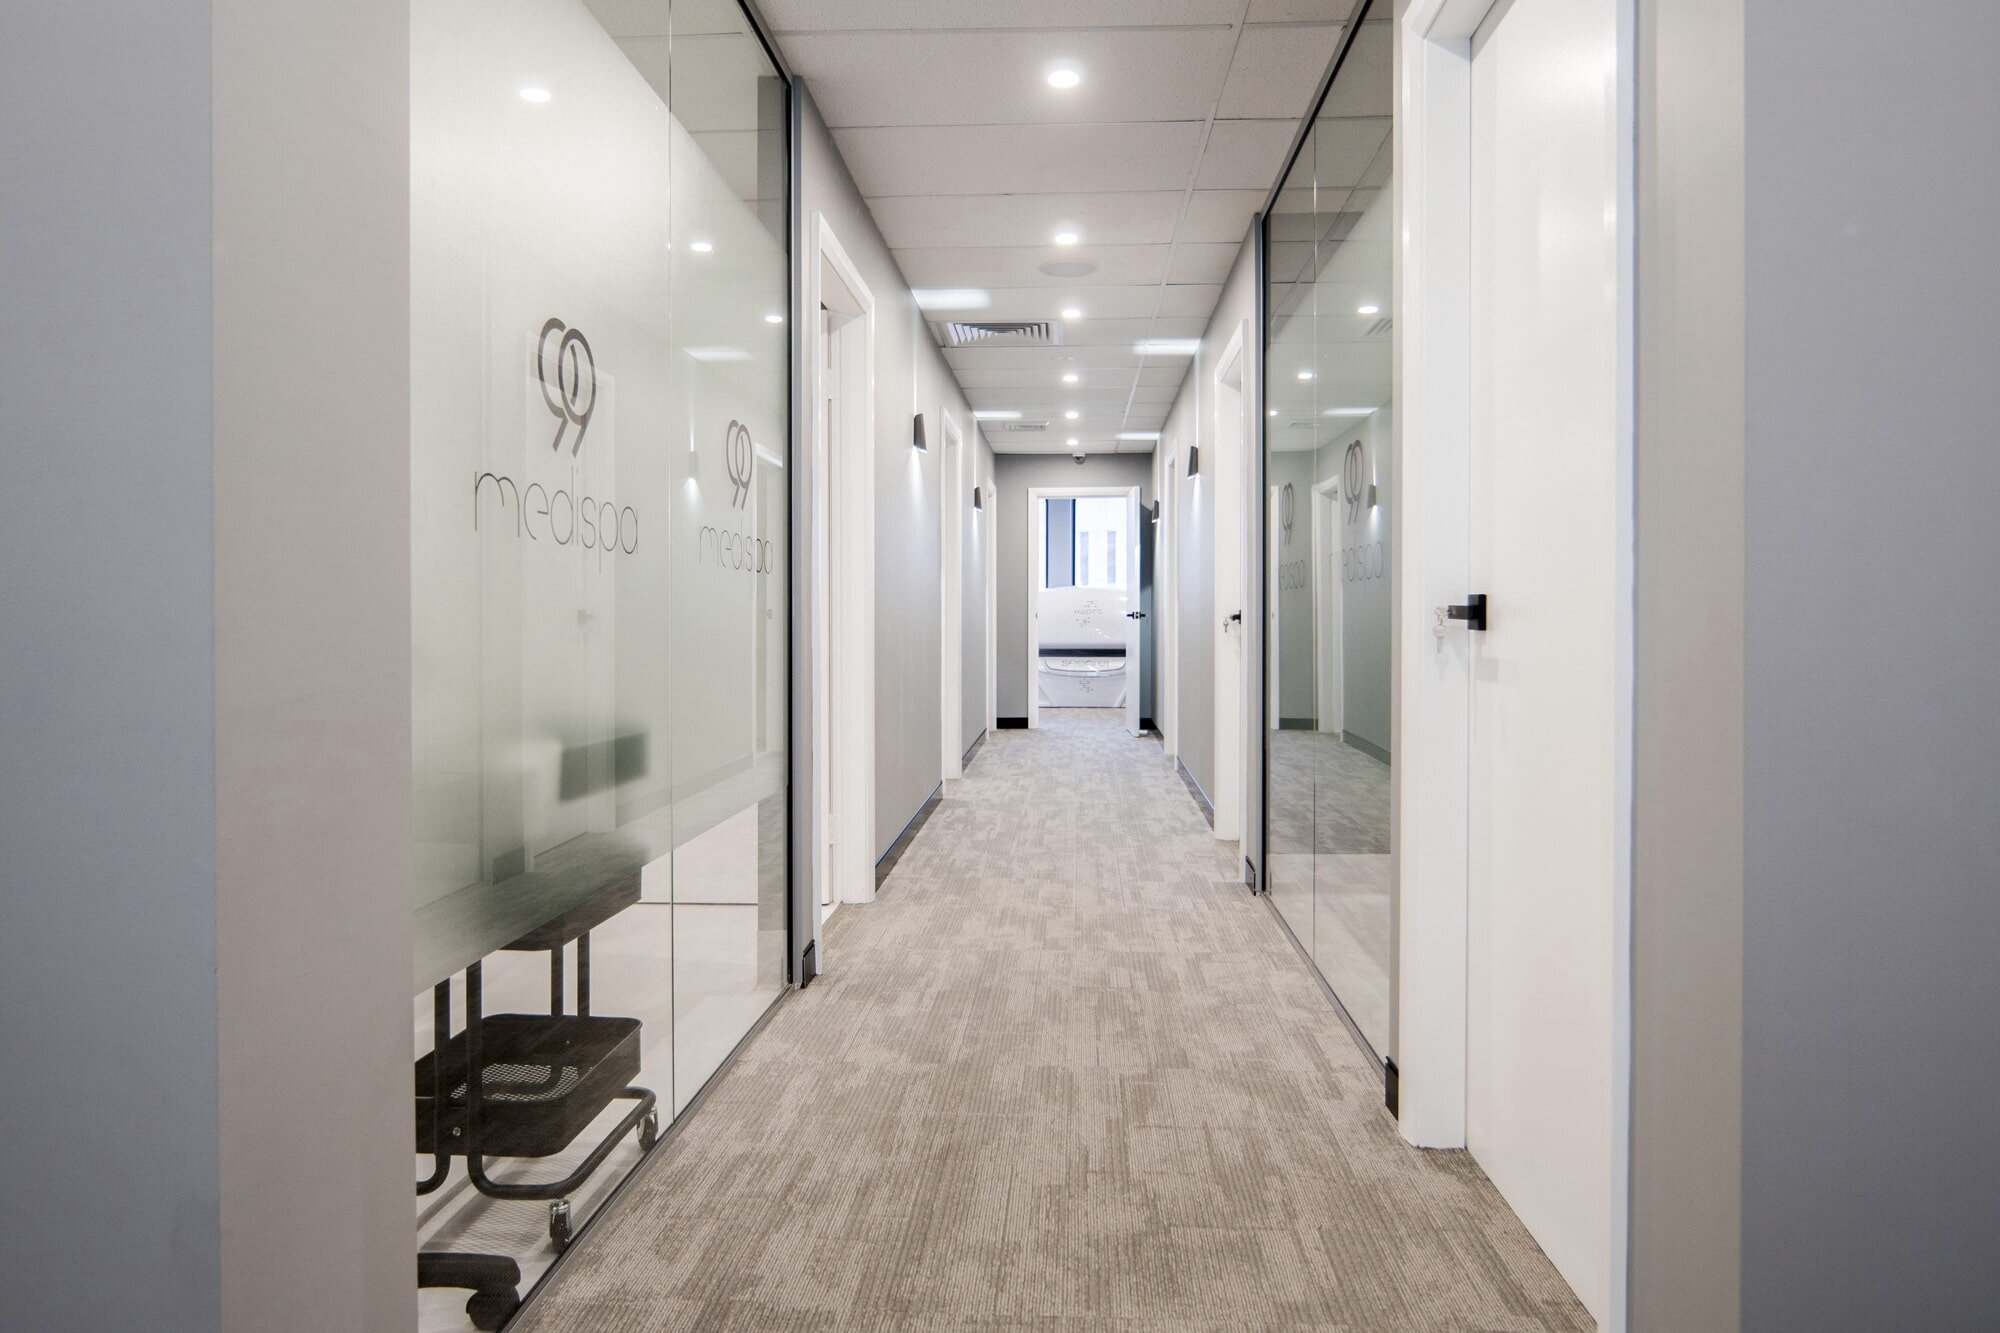 99 Medispa clinic corridor with glass walling